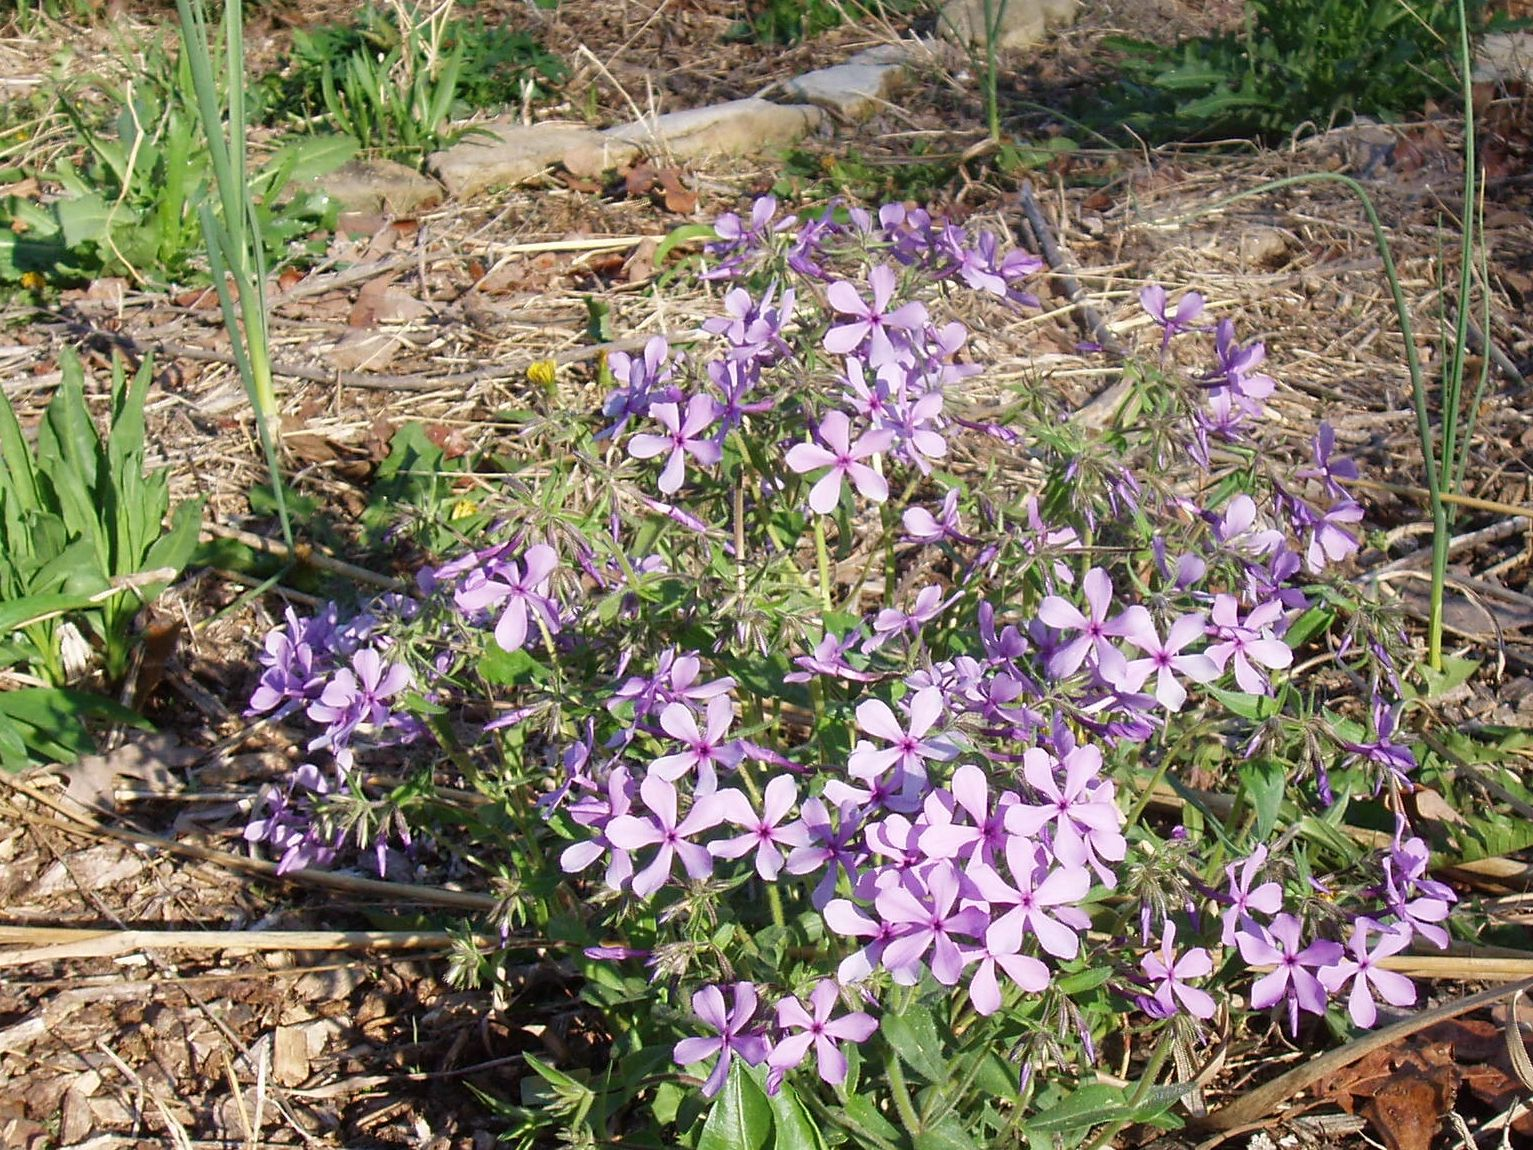 "{""blocks"":[{""key"":""1gdo4"",""text"":""Phlox divaricata Lapham's Woodland Phlox, Wild Sweet William - potted plants email john@easywildflowers.com  "",""type"":""unstyled"",""depth"":0,""inlineStyleRanges"":[],""entityRanges"":[],""data"":{}}],""entityMap"":{}}"